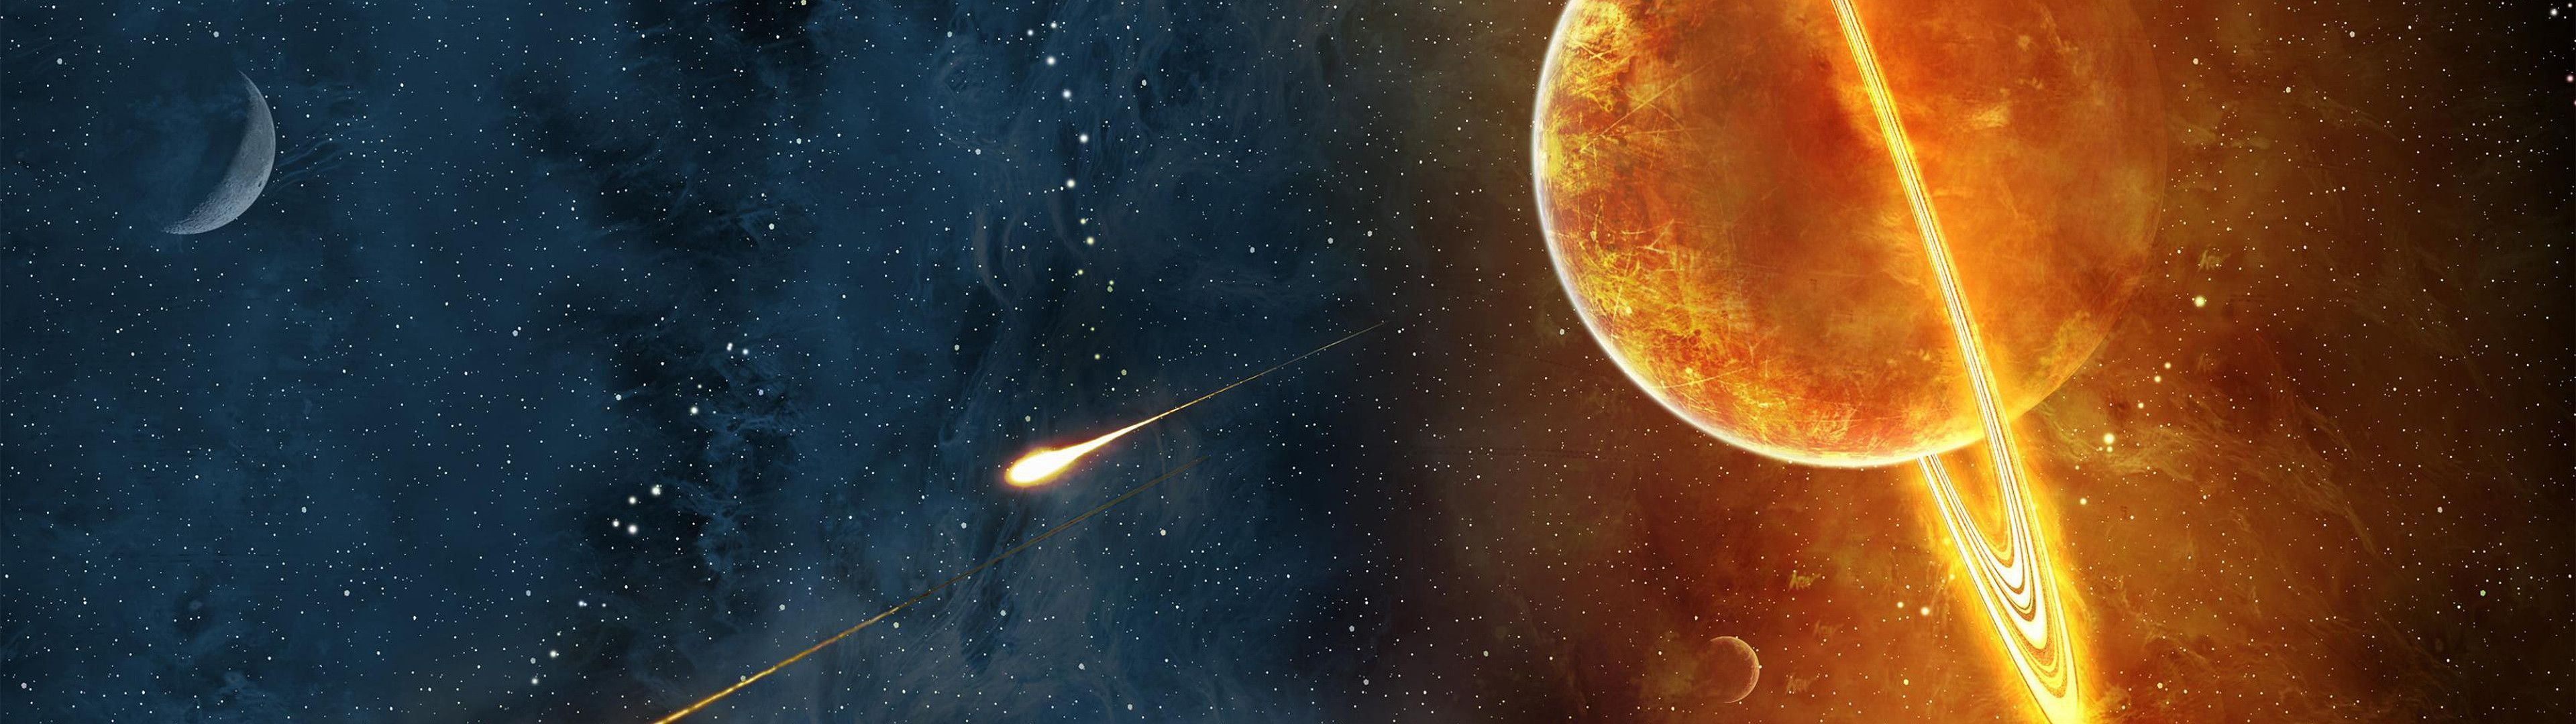 3840x1080 Dual screens | Wallpapers | Pinterest | Outer space, Galaxies and Space